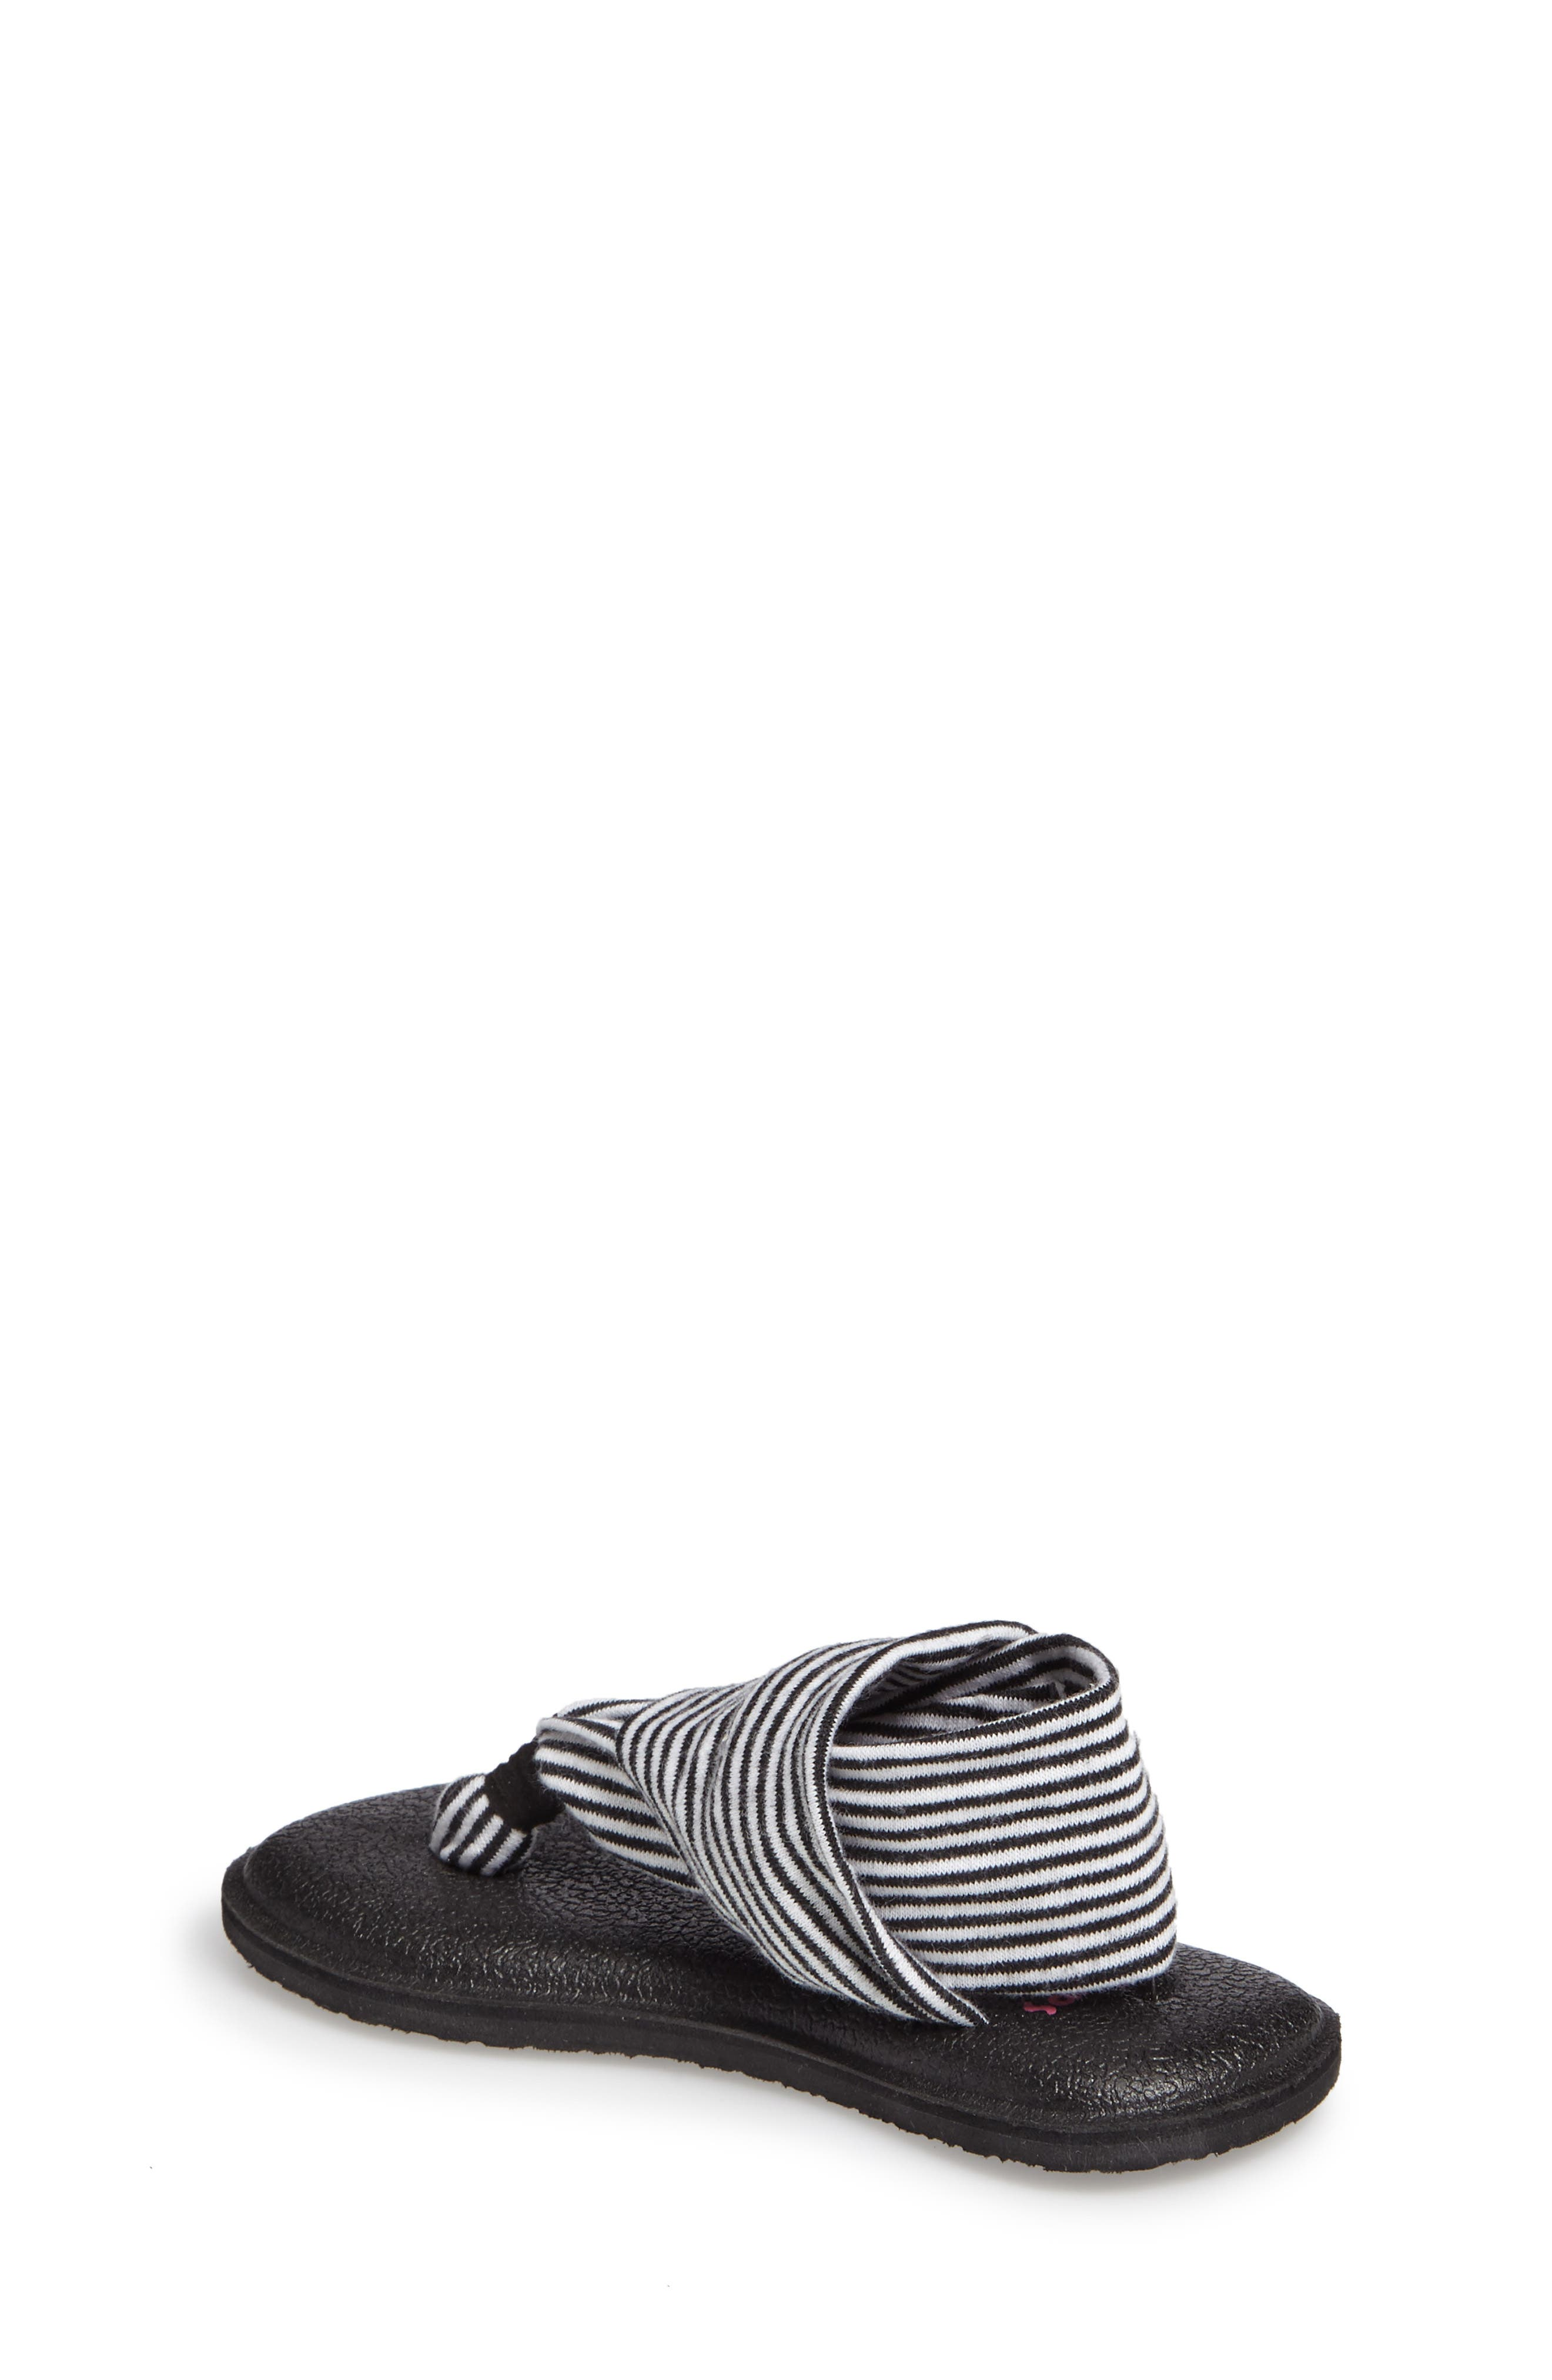 SANUK, 'Yoga Sling' Sandal, Alternate thumbnail 2, color, BLACK/ WHITE STRIPE